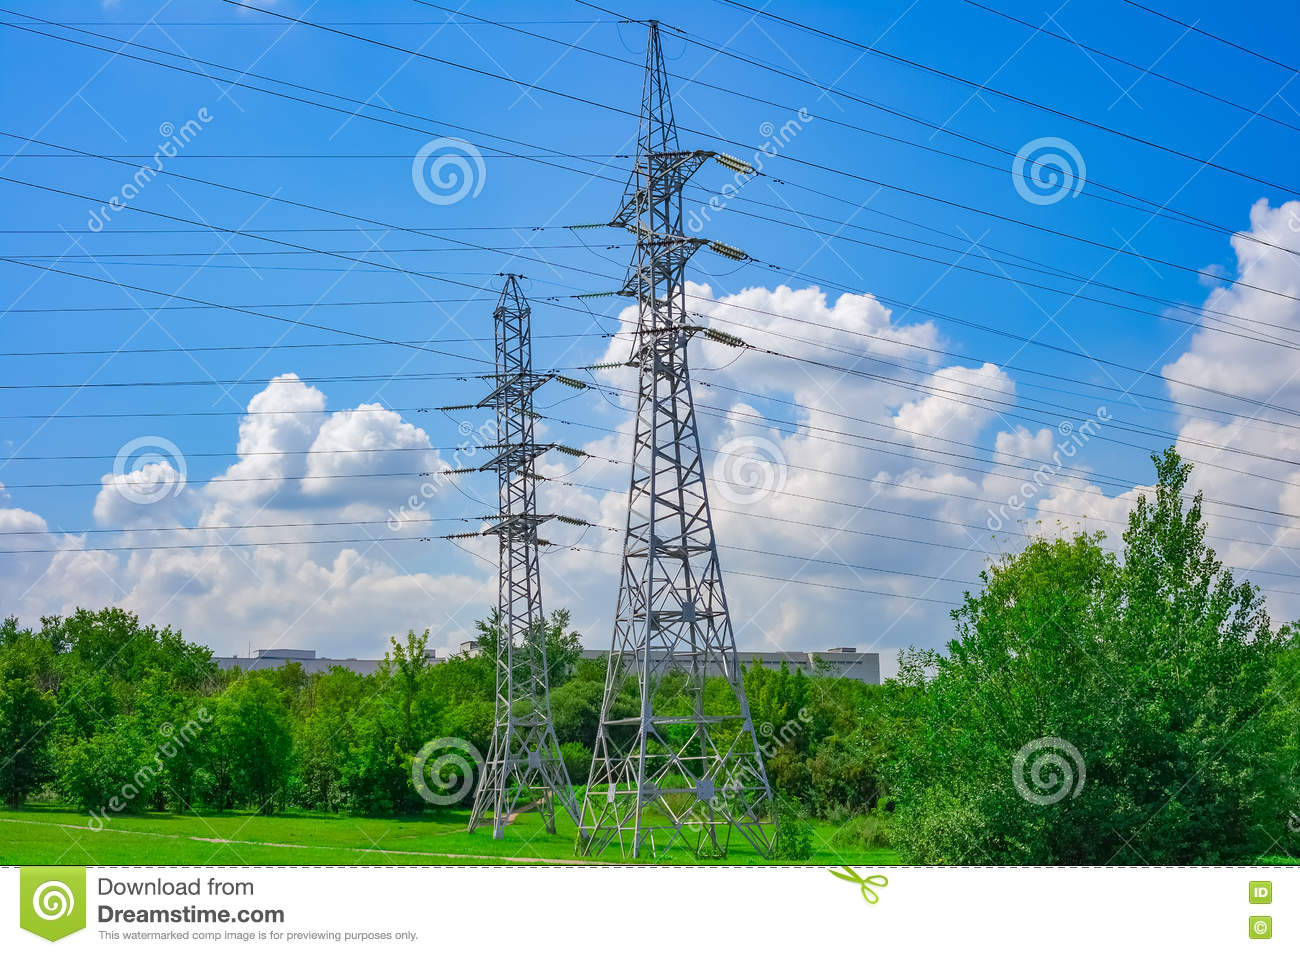 High voltage transmission line pylon tower